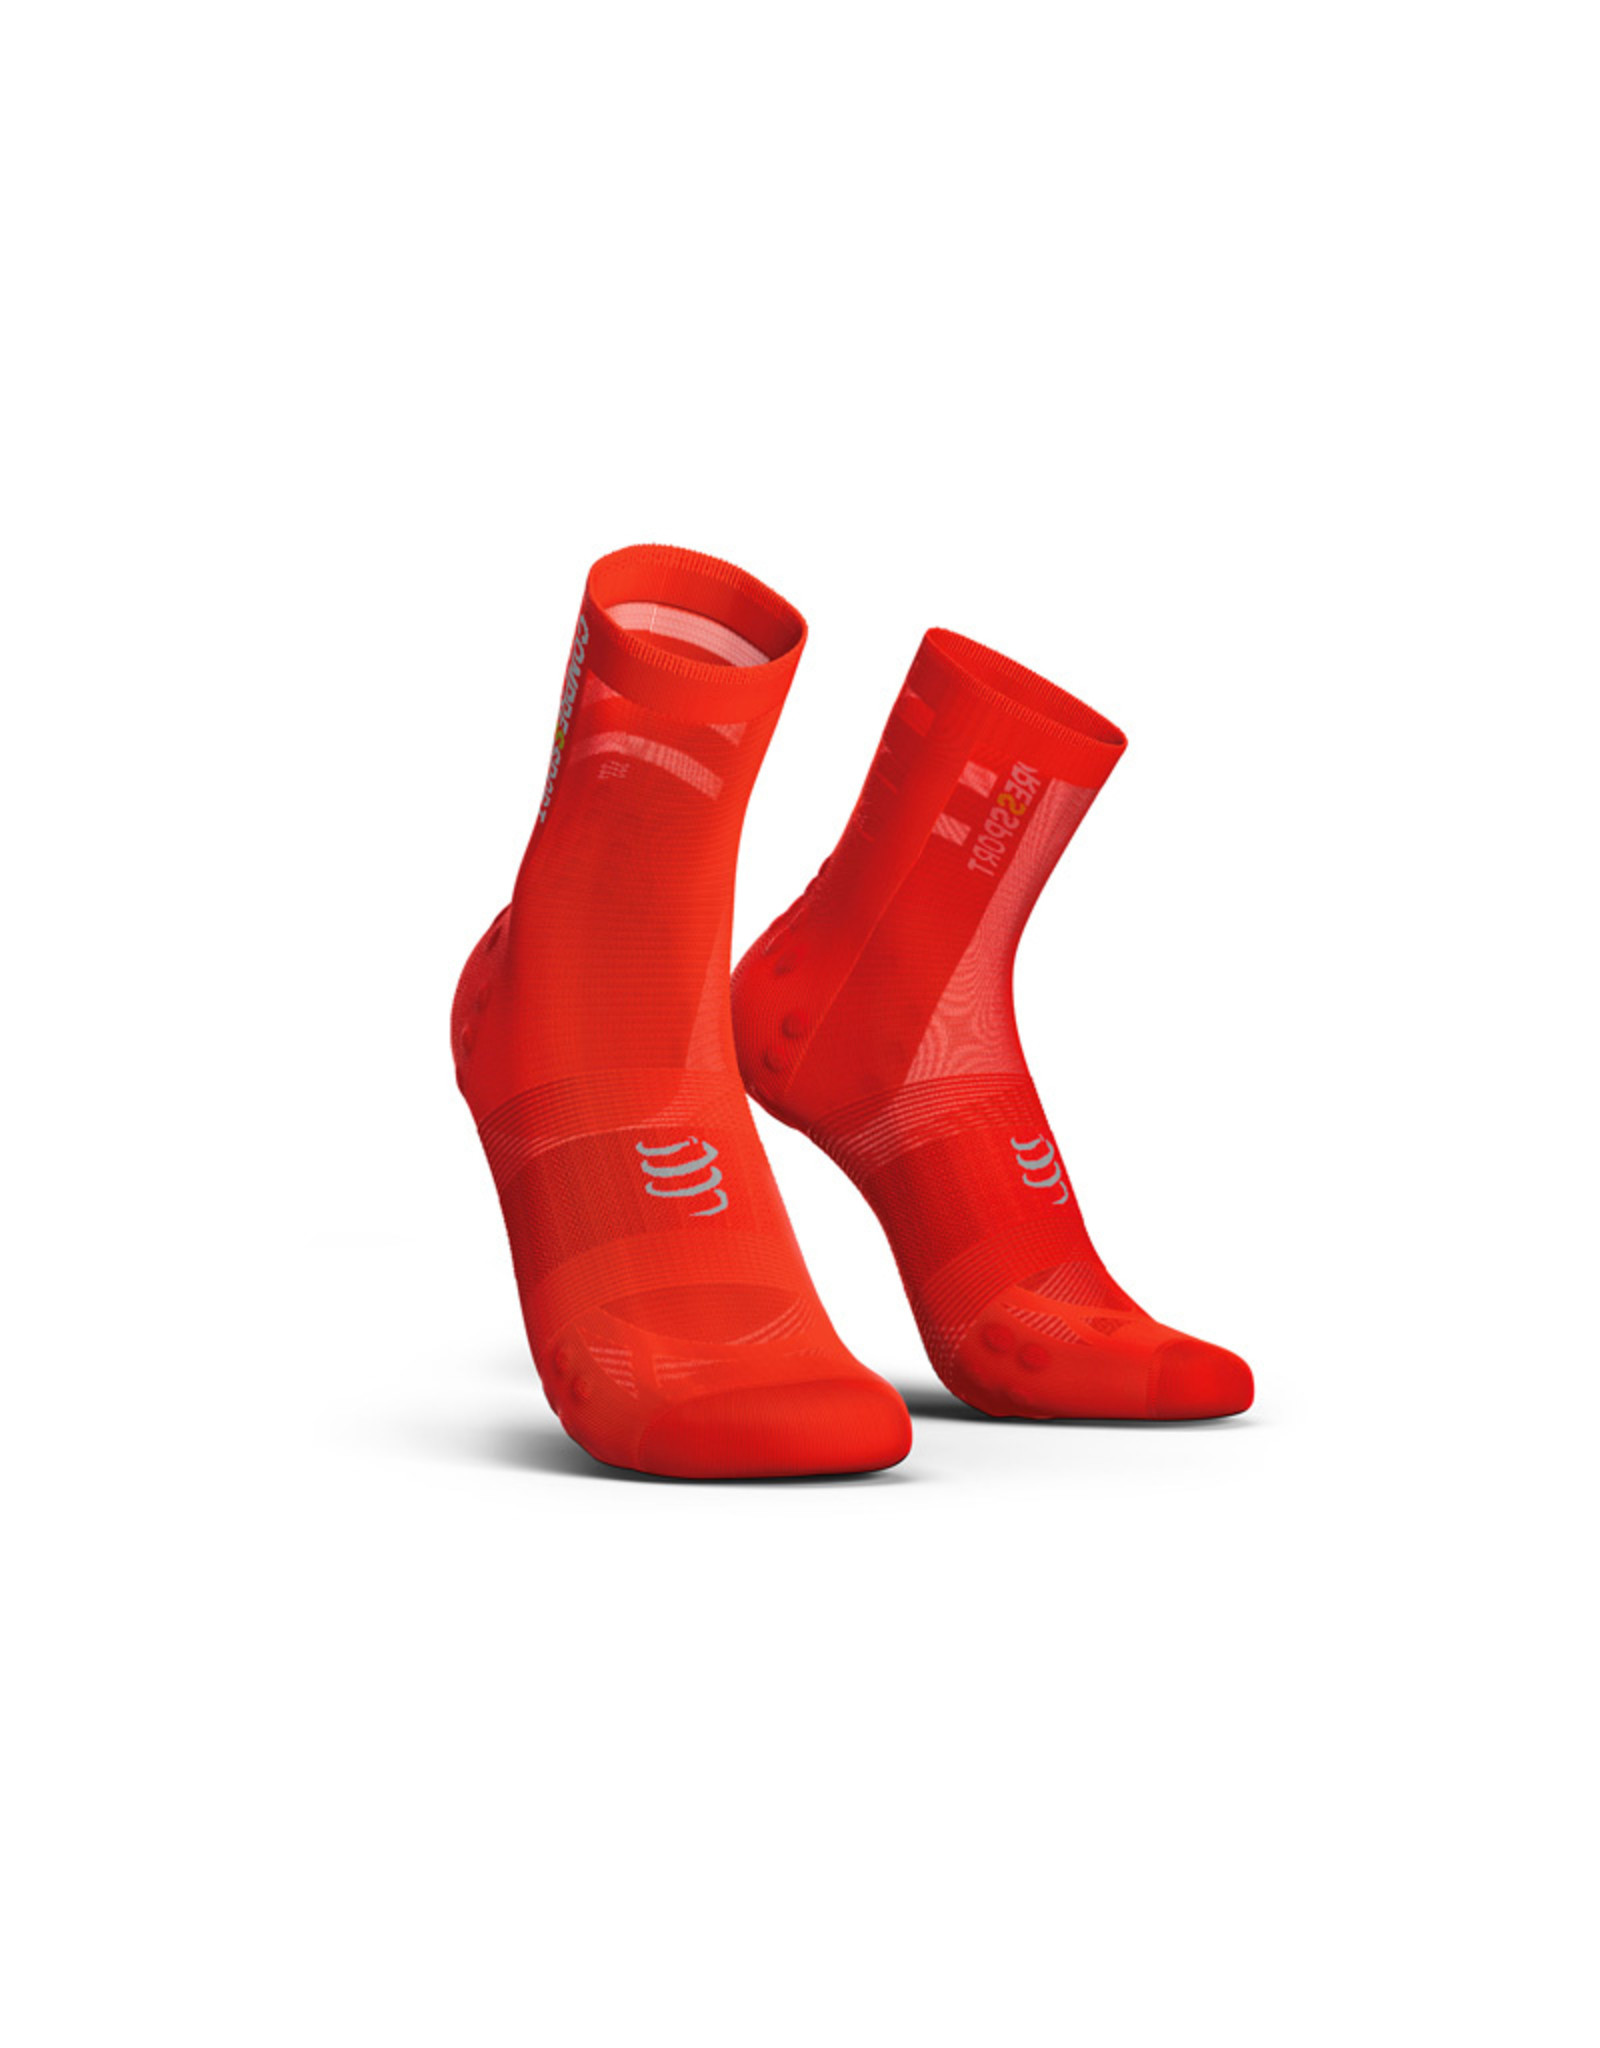 Compressport Pro Racing Socks V3.0 Ultralight Bike Fietssokken - Rood